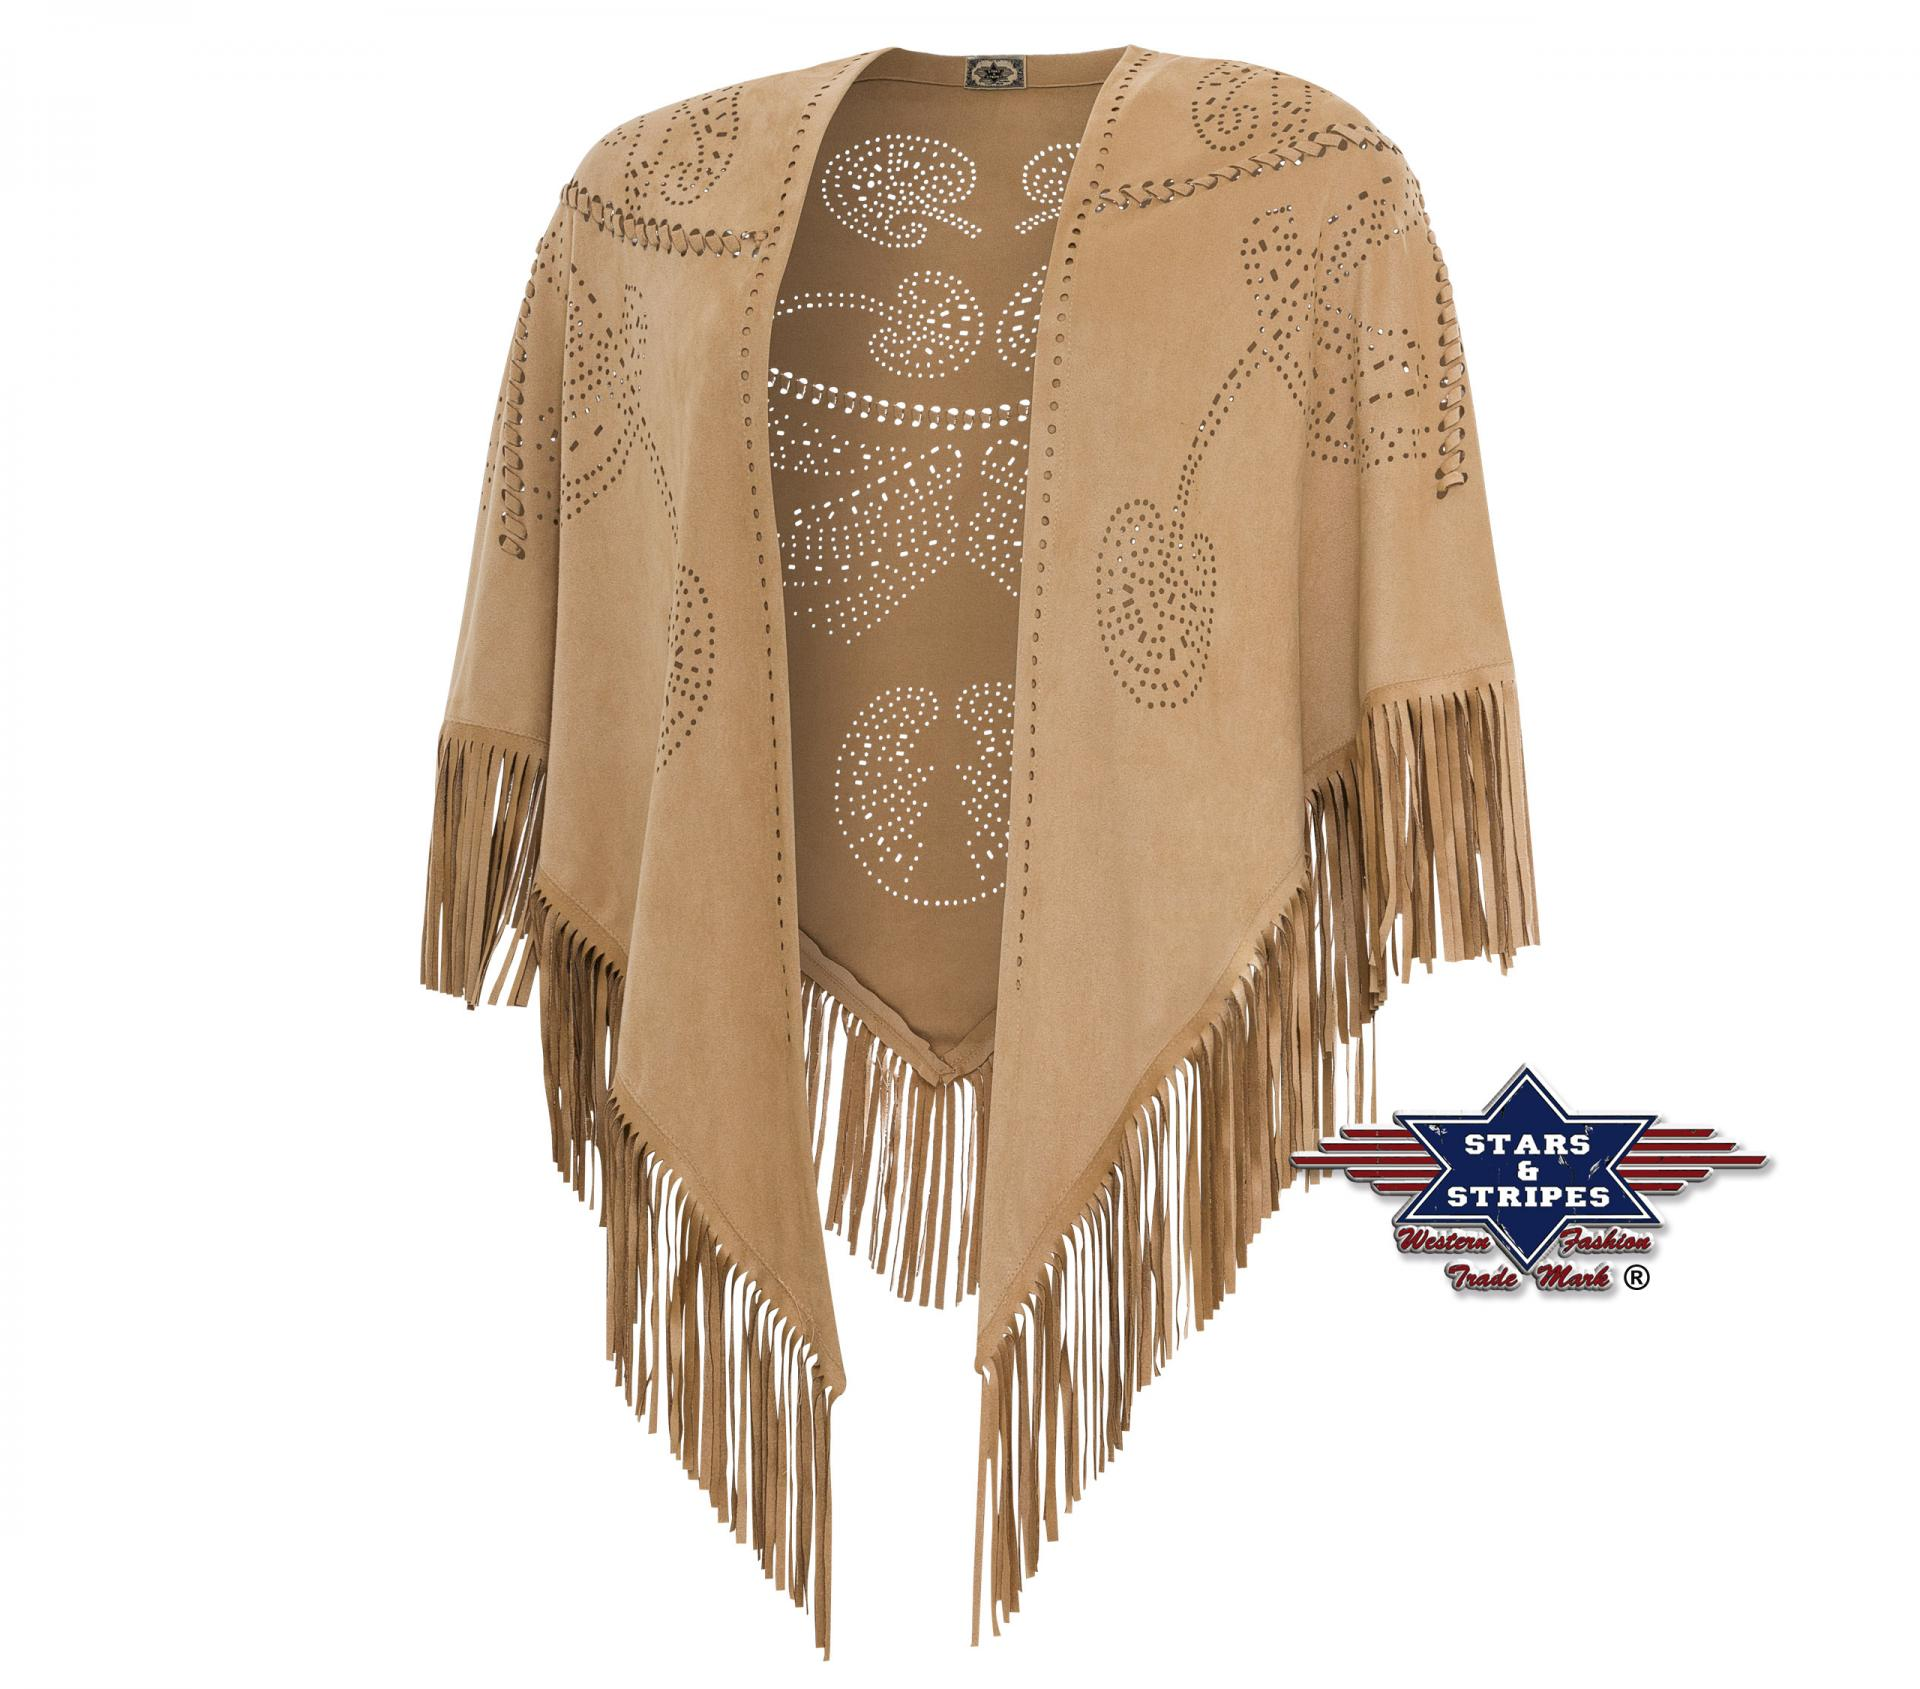 Poncho stars and stripes